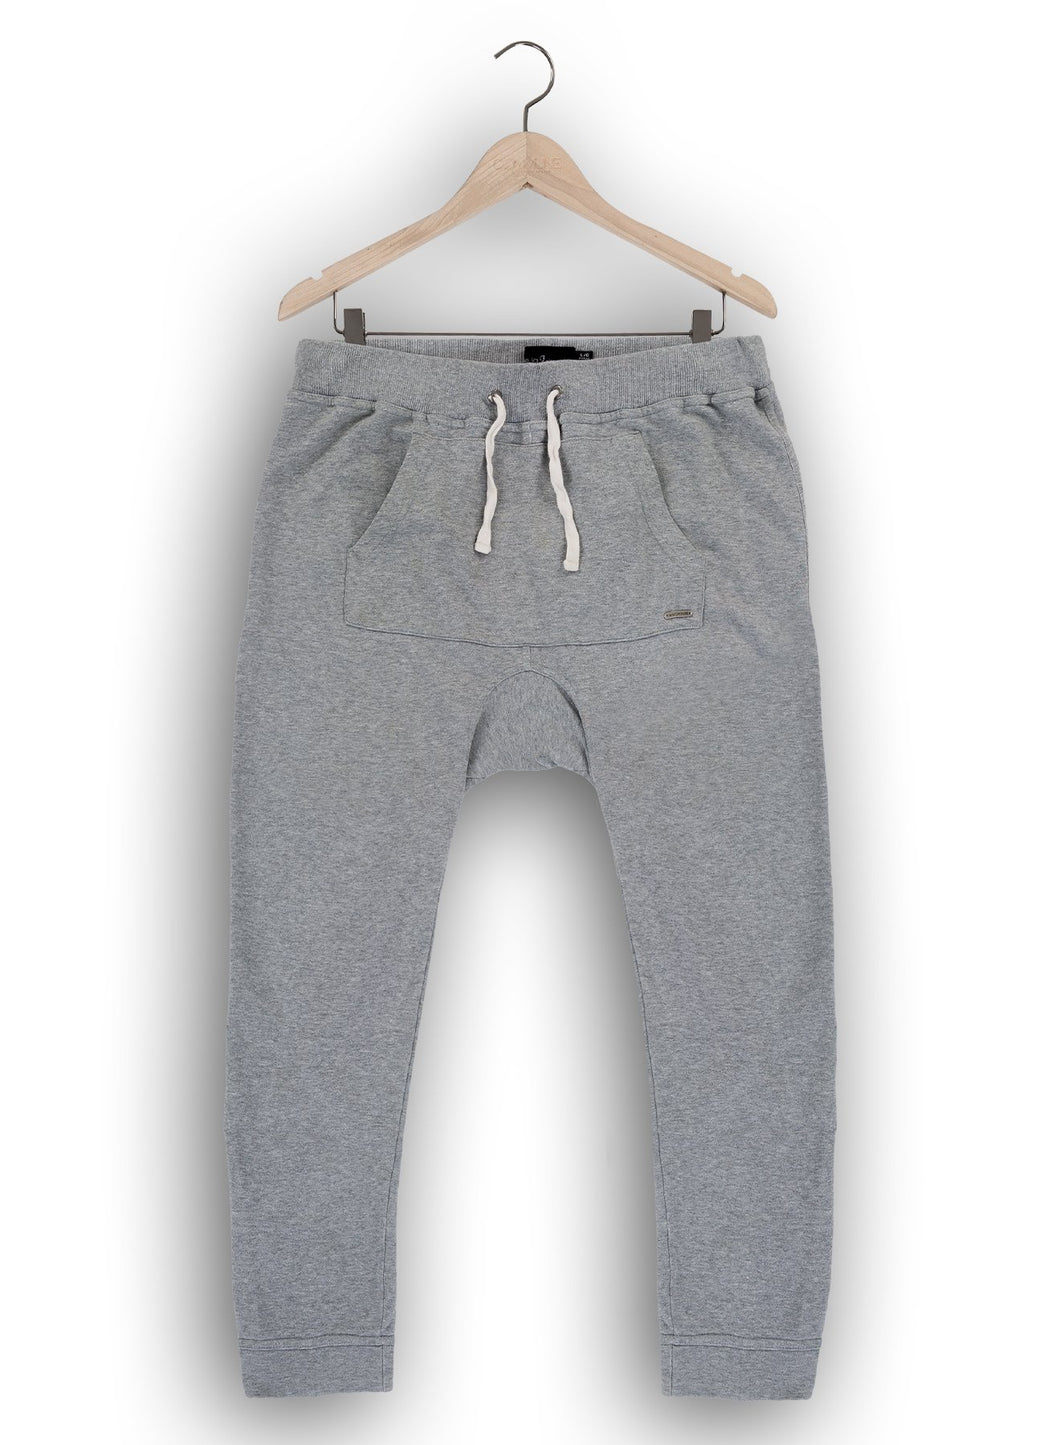 Jasper kangaroo sweatpants in heather grey